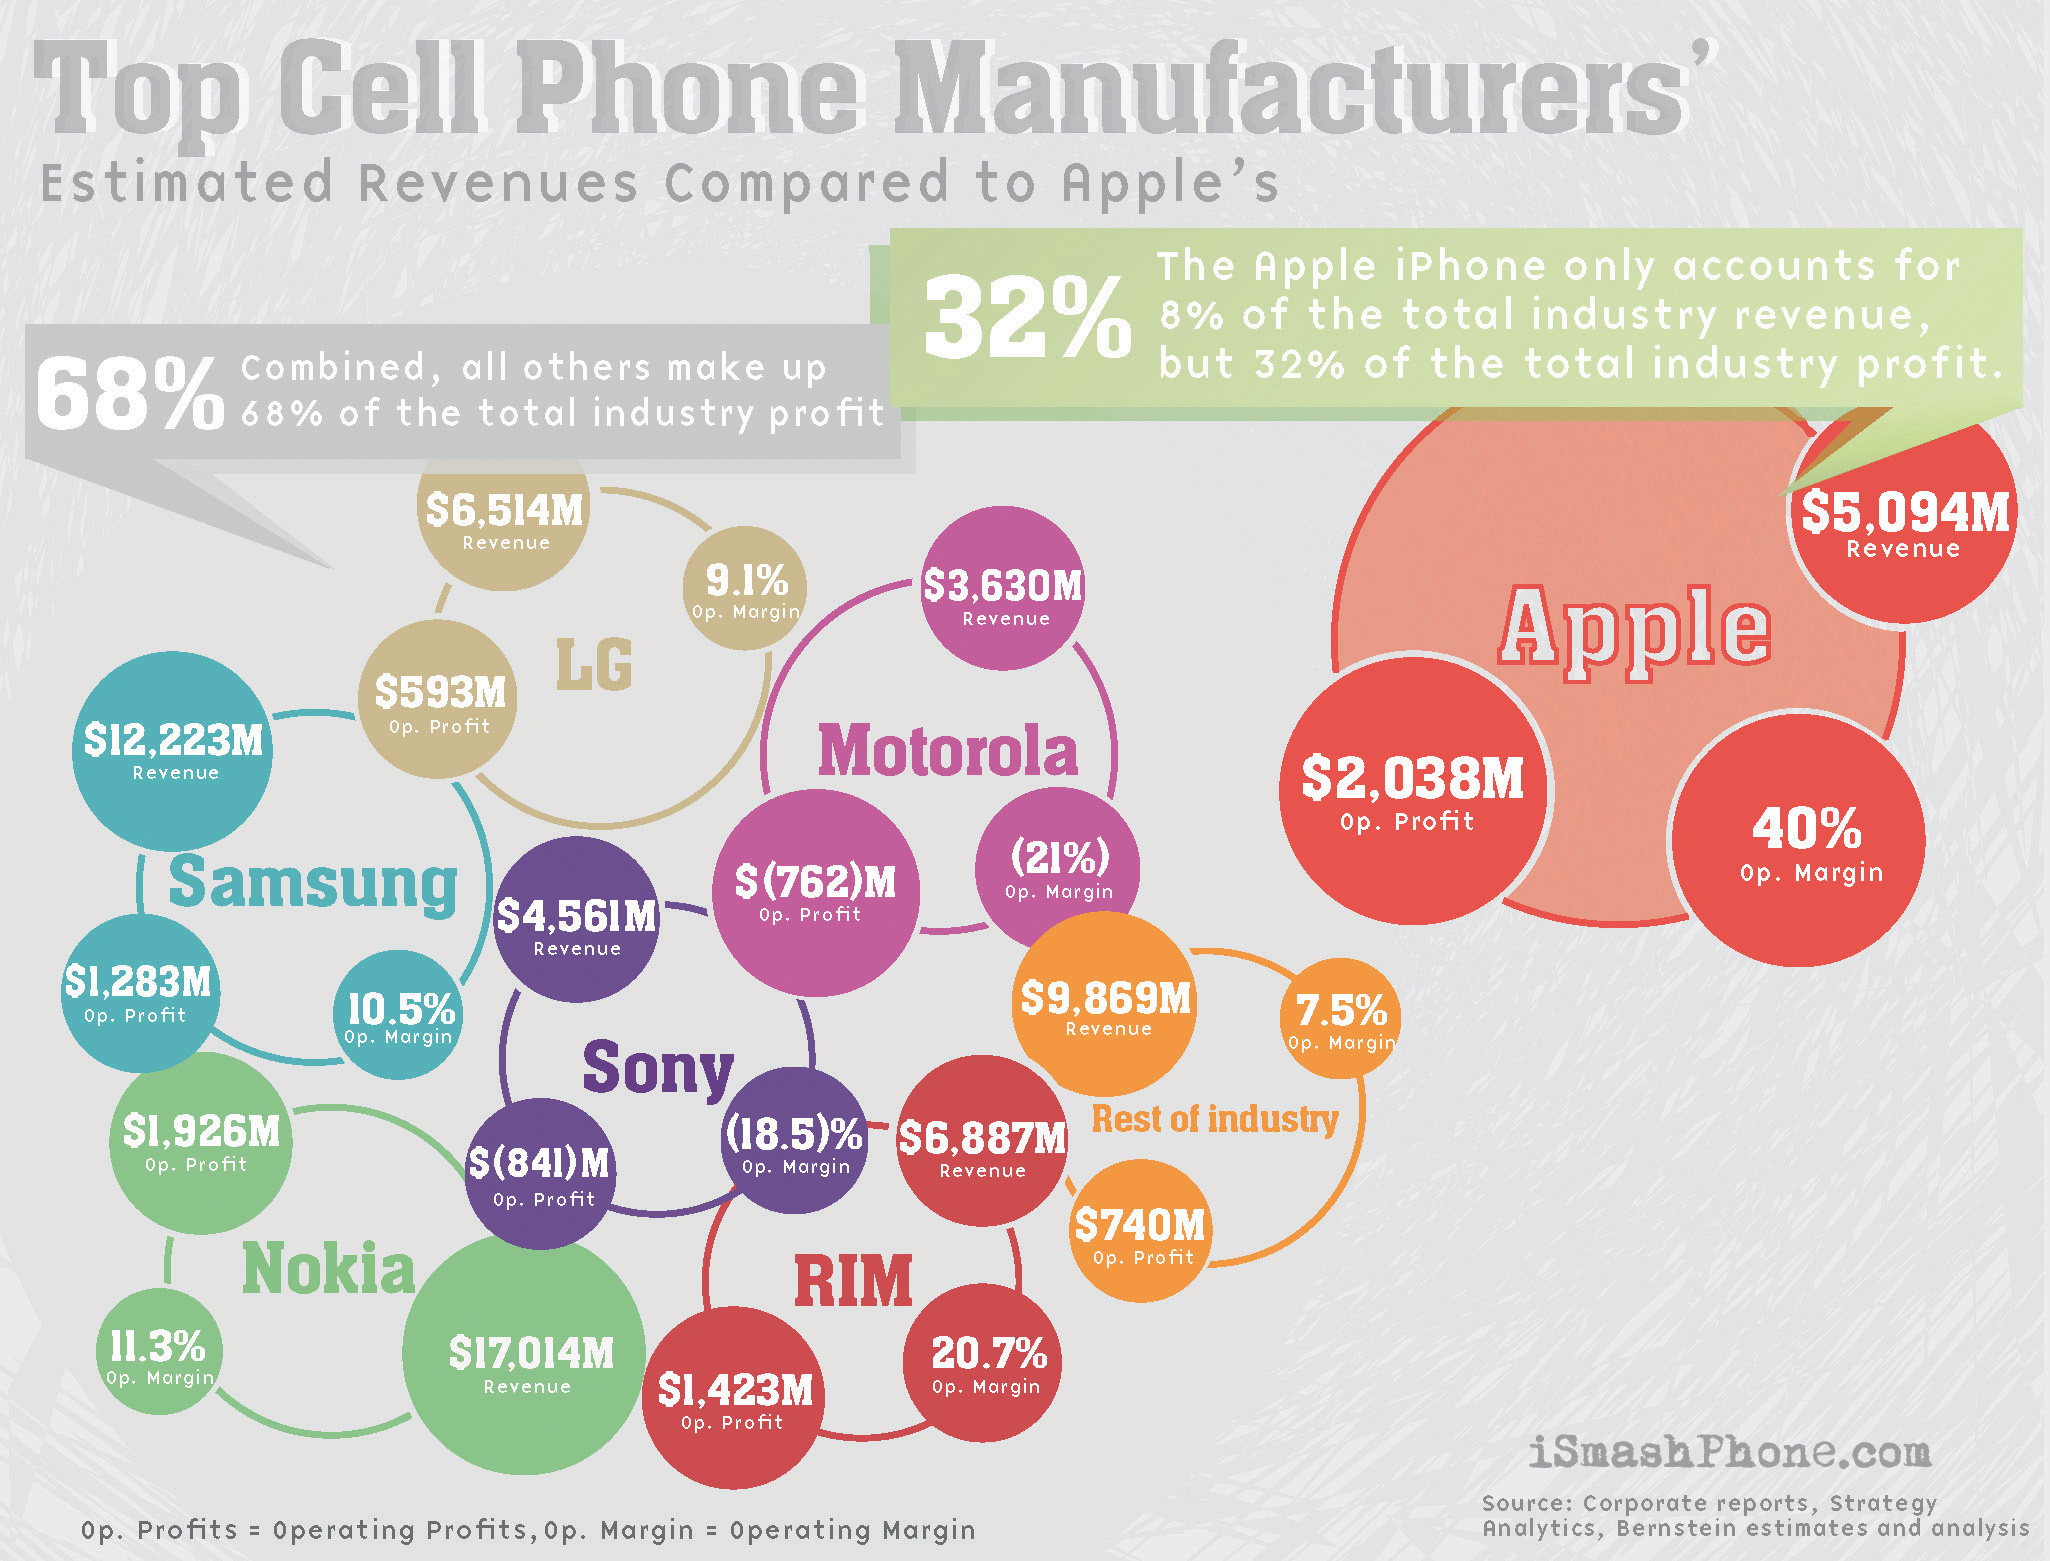 Image of Estimated Revenues of the Top Cell Phone Manufacturers. Apple is the largest with 32% of the market and all other providers combined make up 68% of the market.